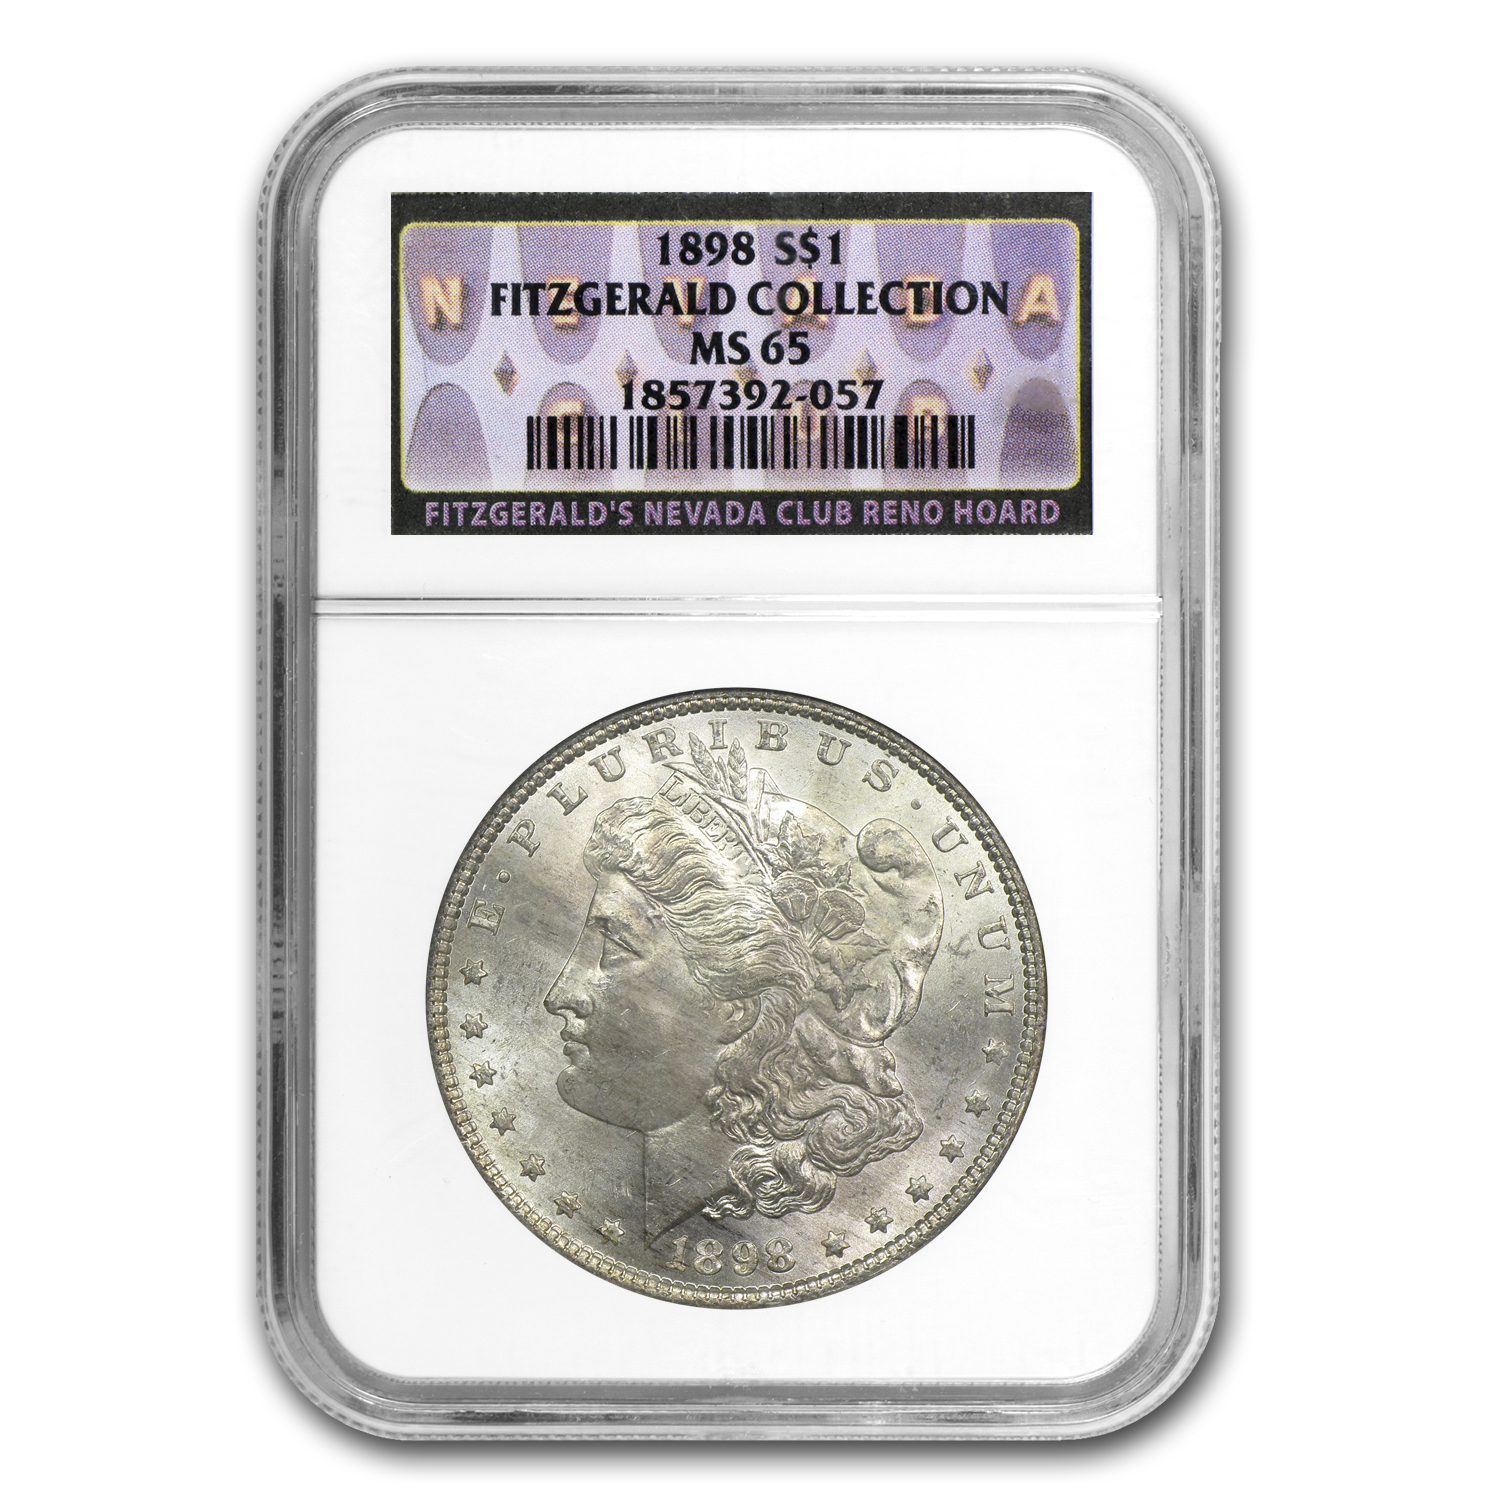 1898 Morgan Dollar MS-65 NGC Fitzgerald Collection